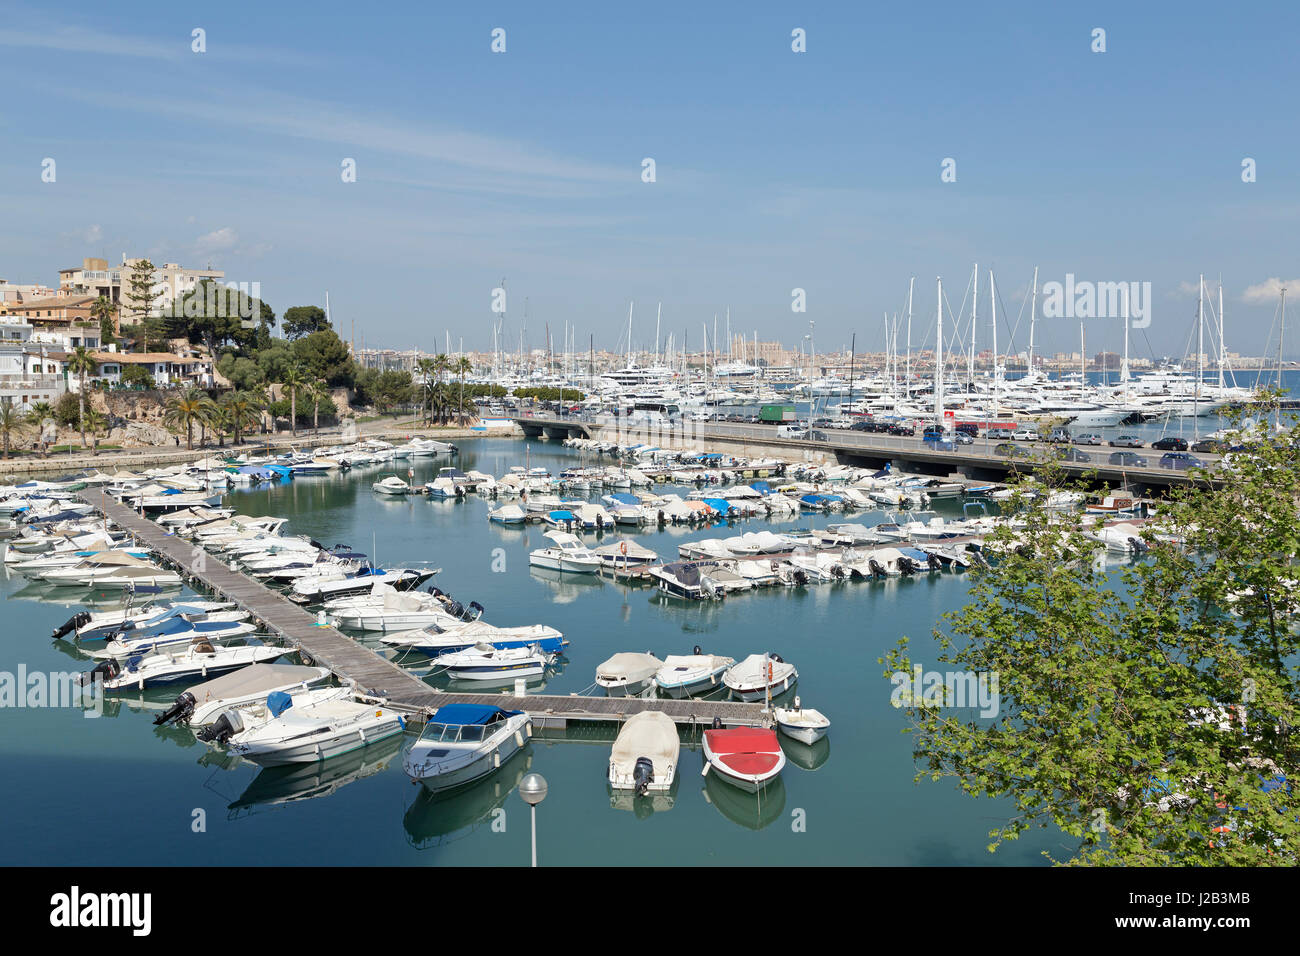 marina in Palma de Mallorca, Spain - Stock Image